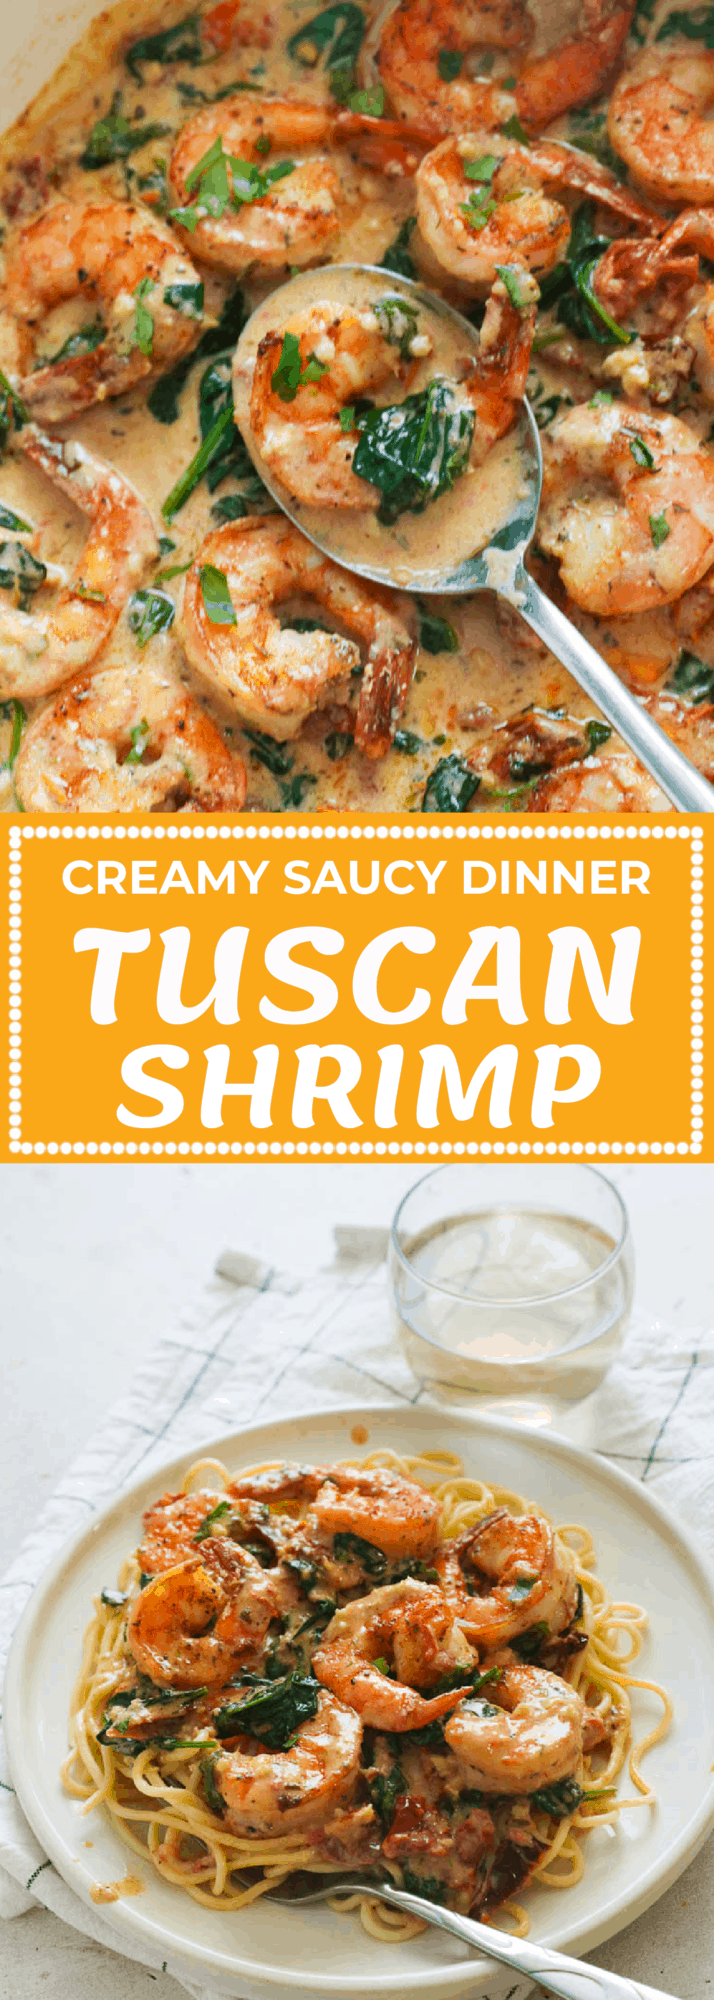 creamy saucy dinner Tuscan Shrimp